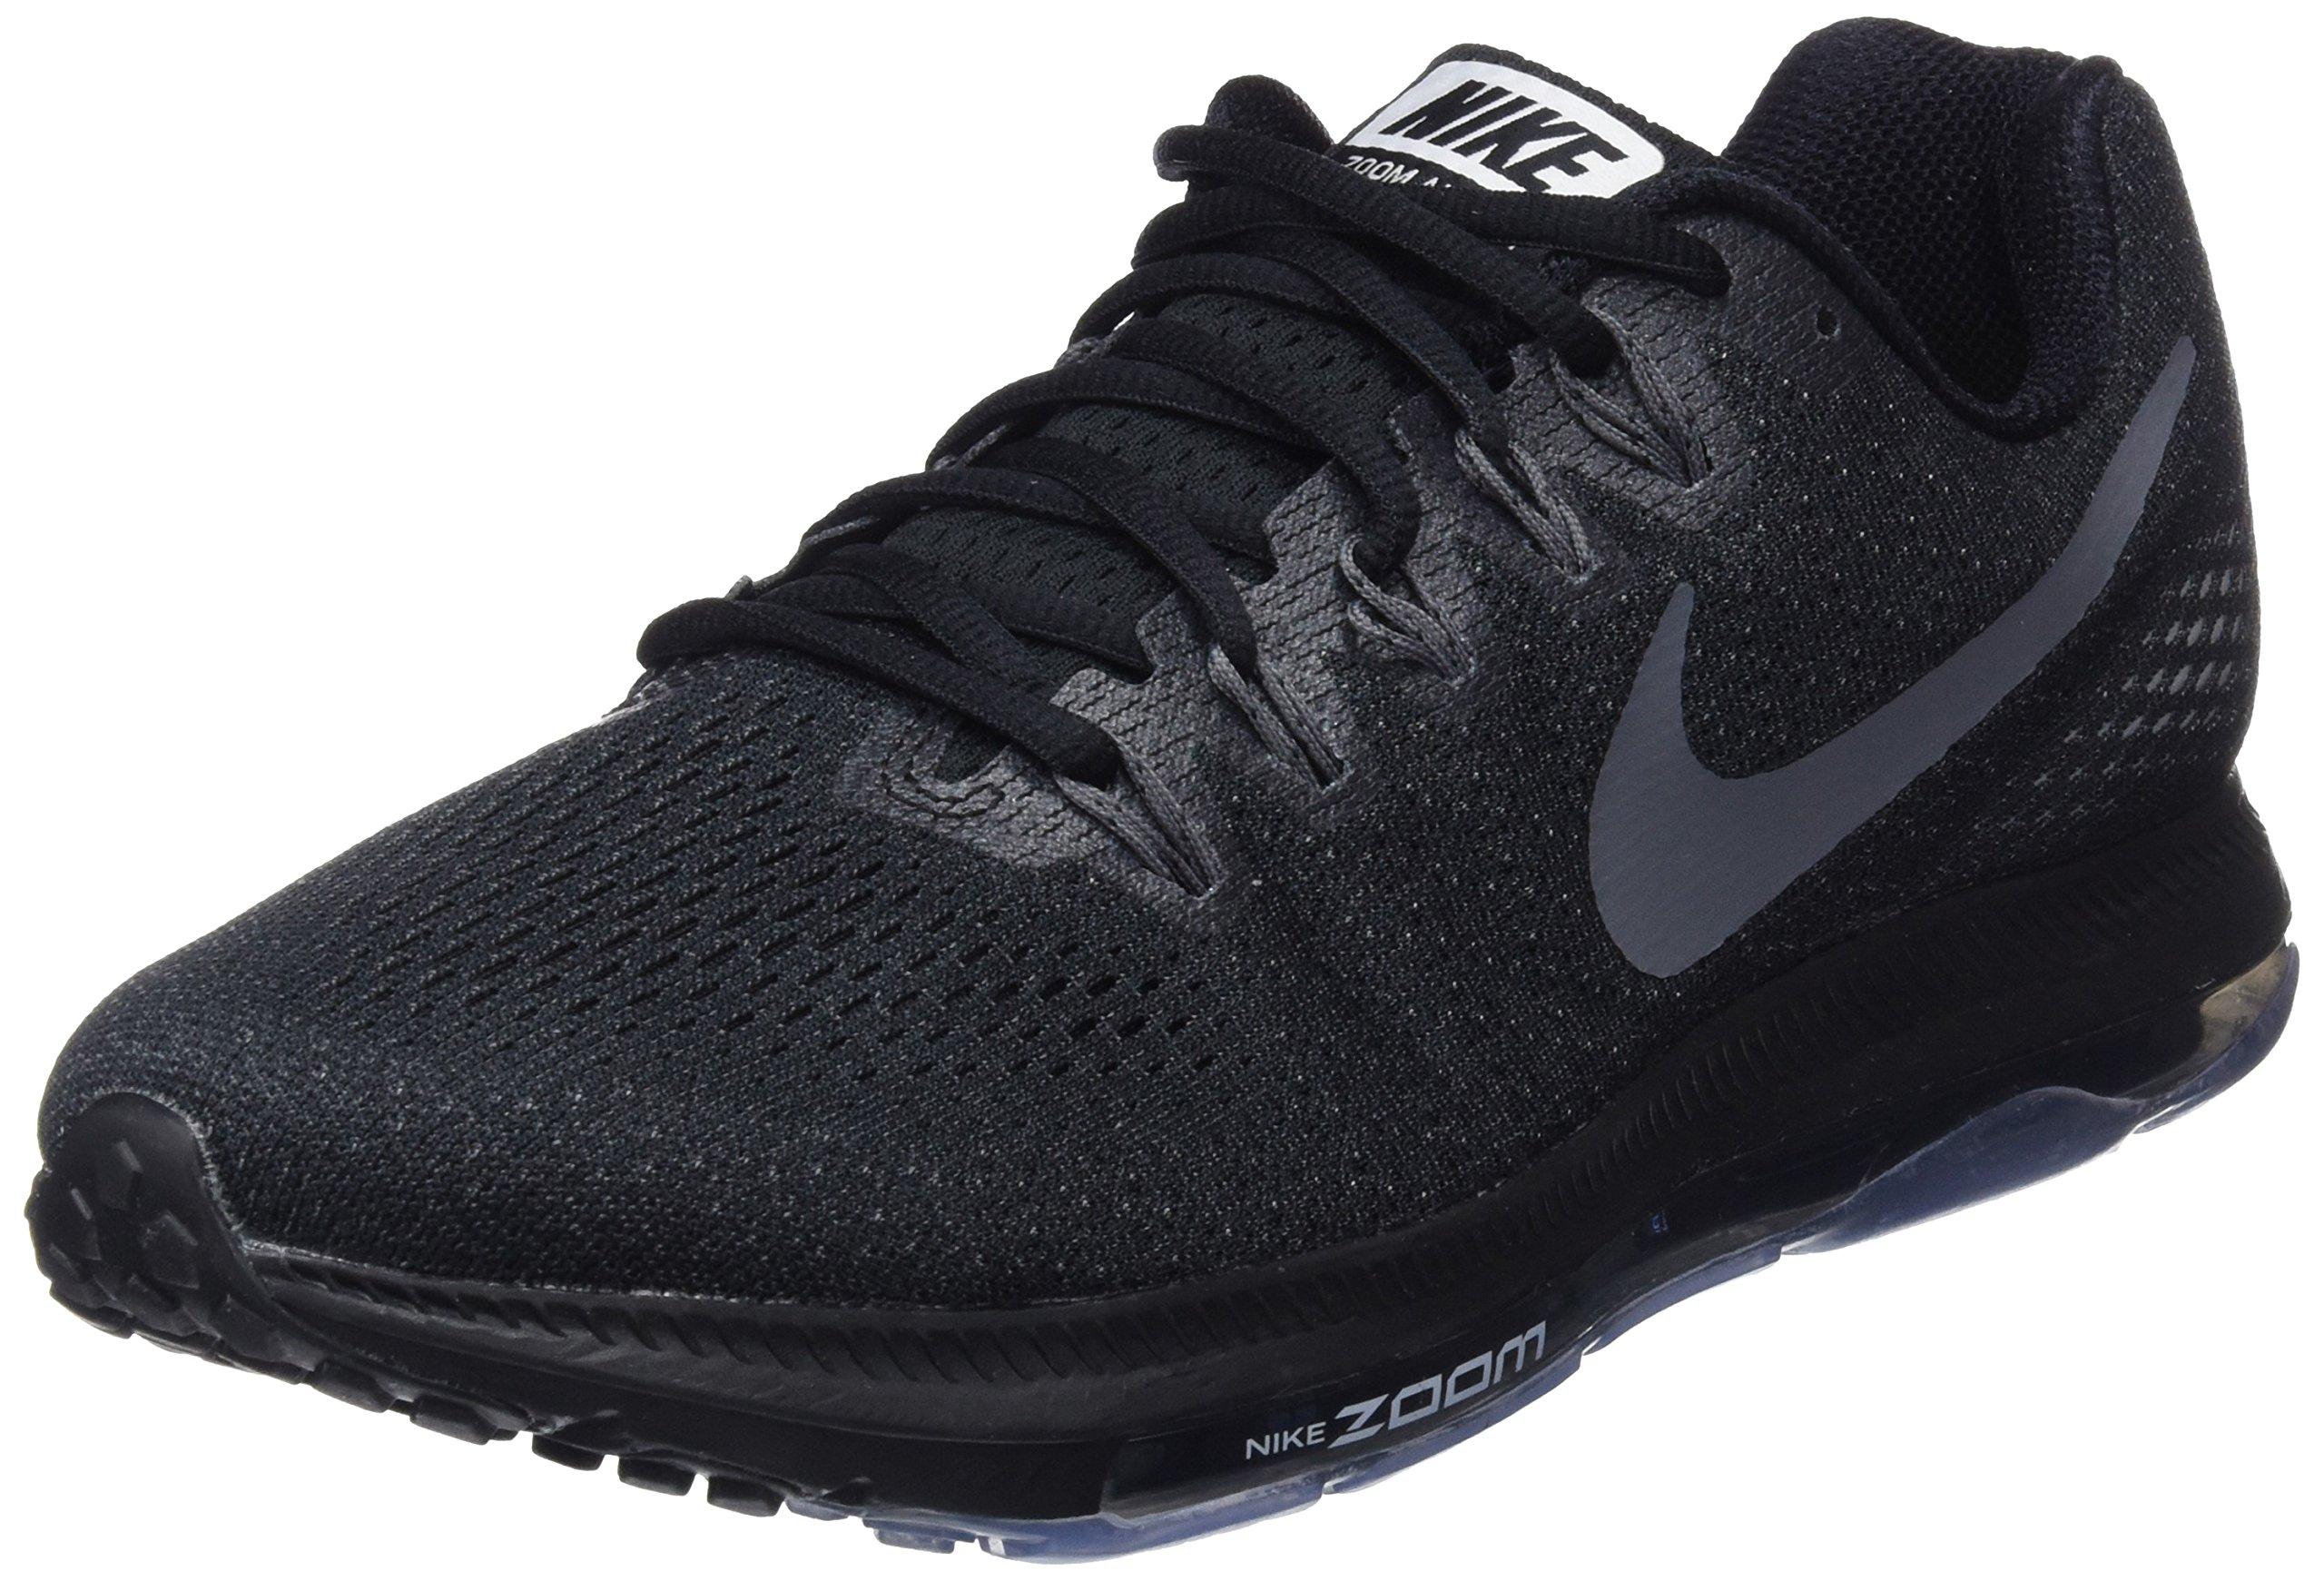 NIKE Zoom All Out Low Men's Running